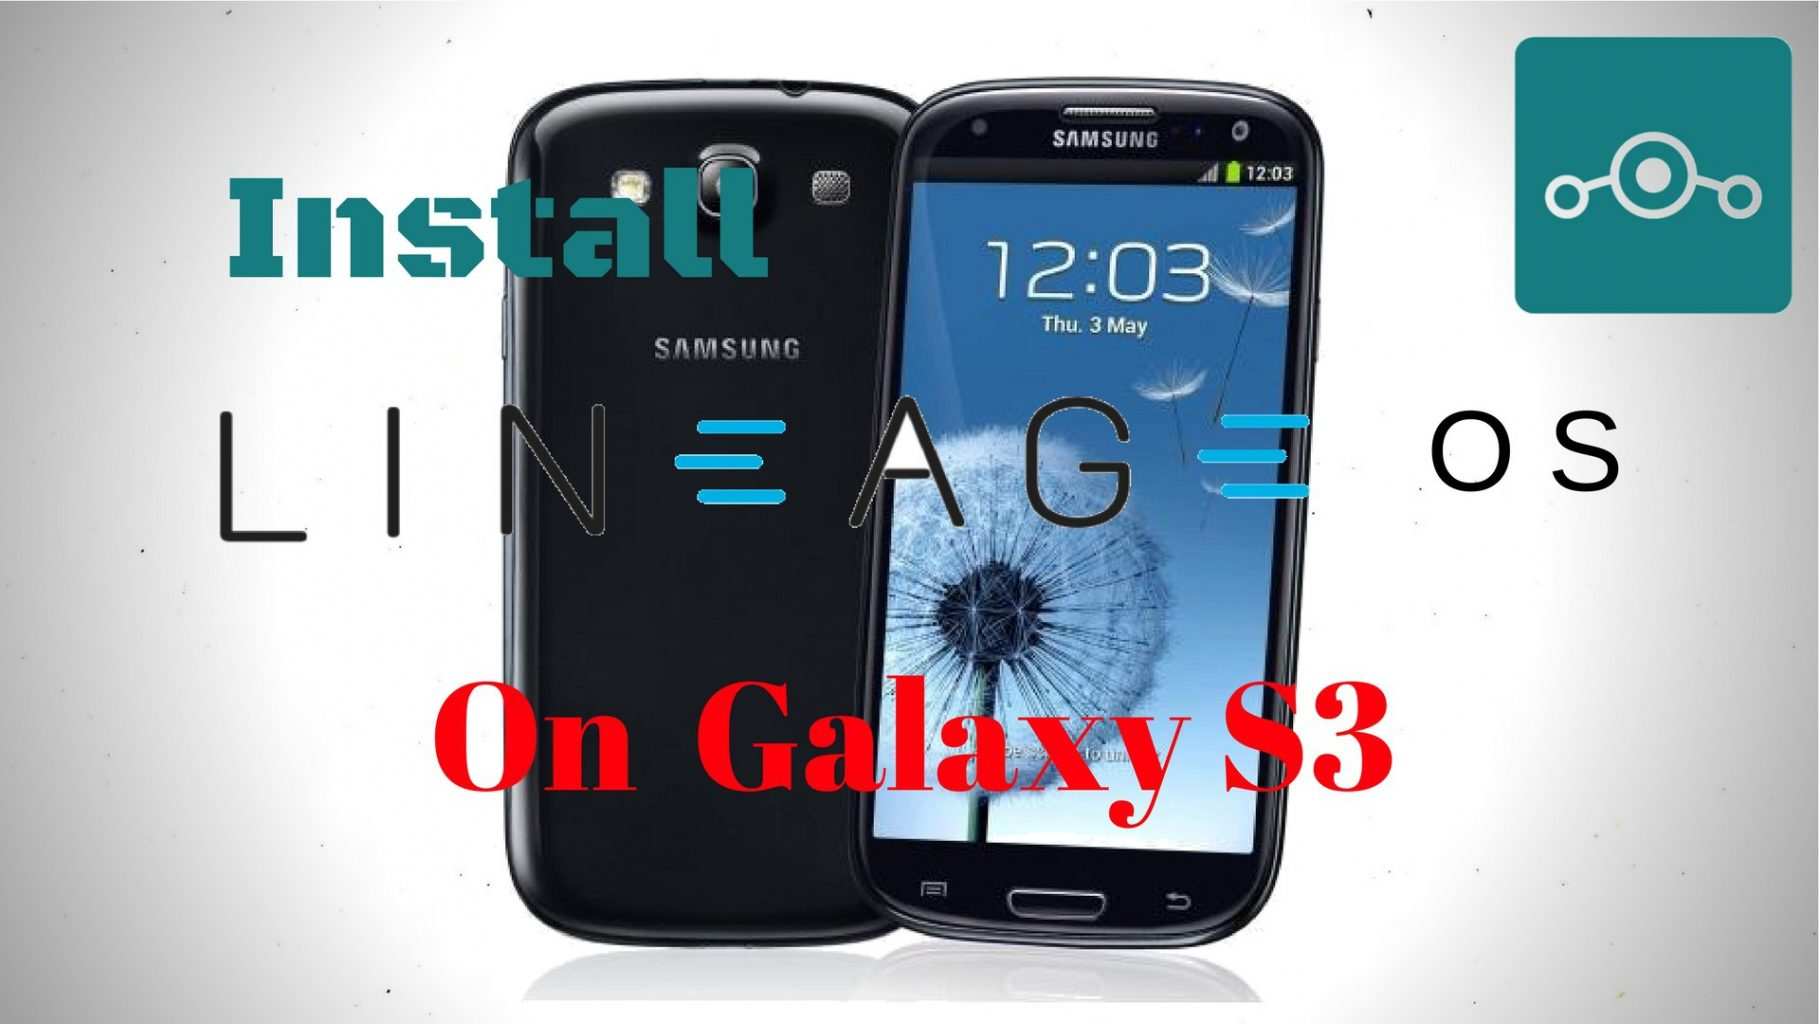 Official] Lineage OS 14 1 for Samsung Galaxy S3 (verizon